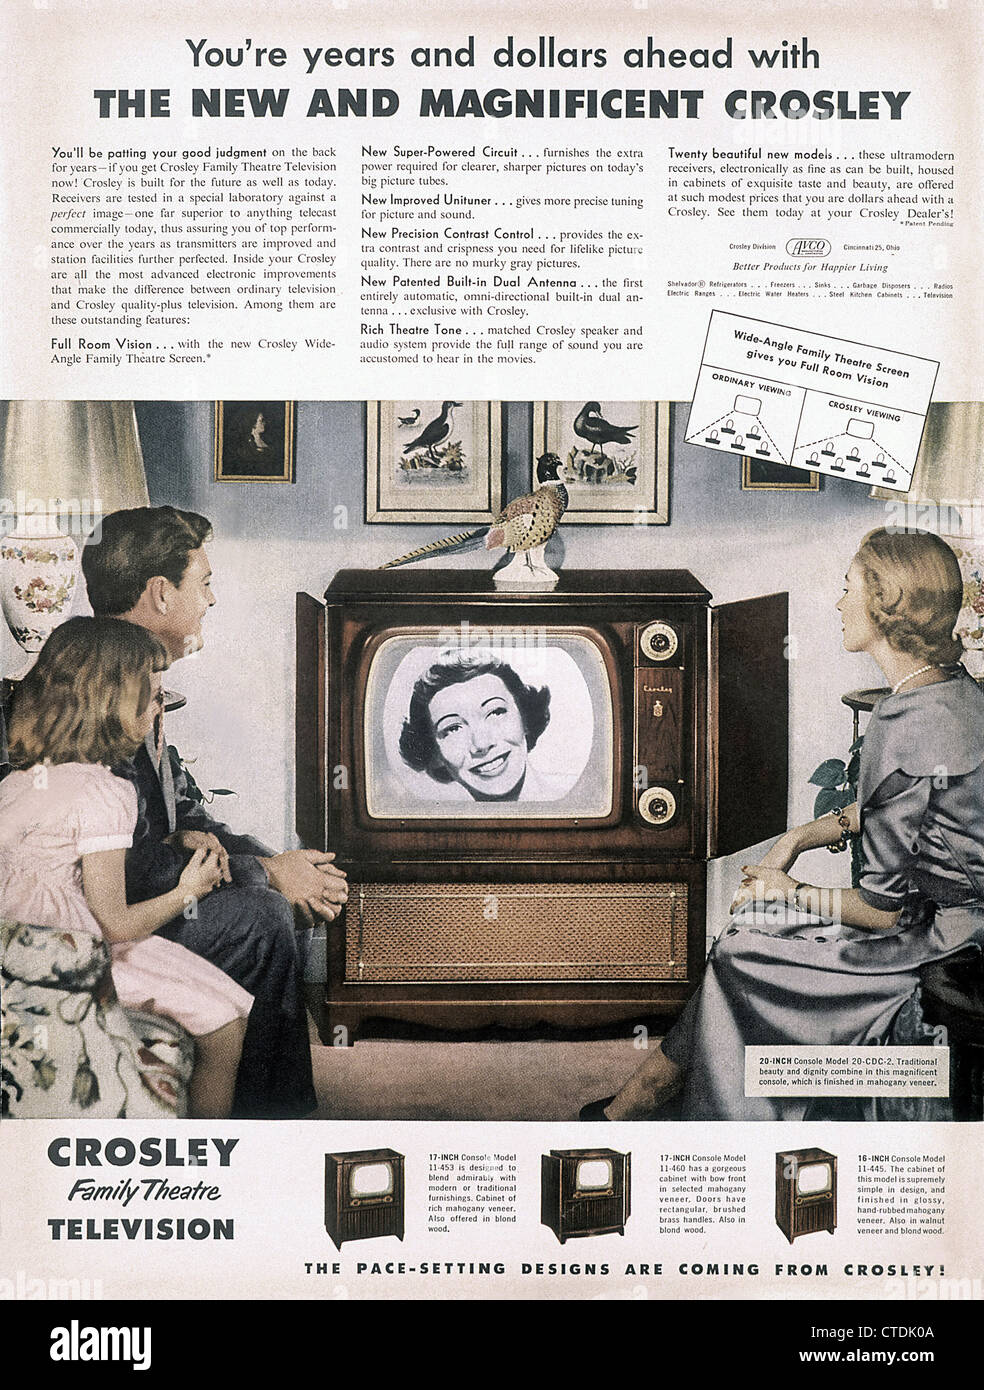 1950s magazine advertisement for Crosley Television set showing family watching TV. - Stock Image